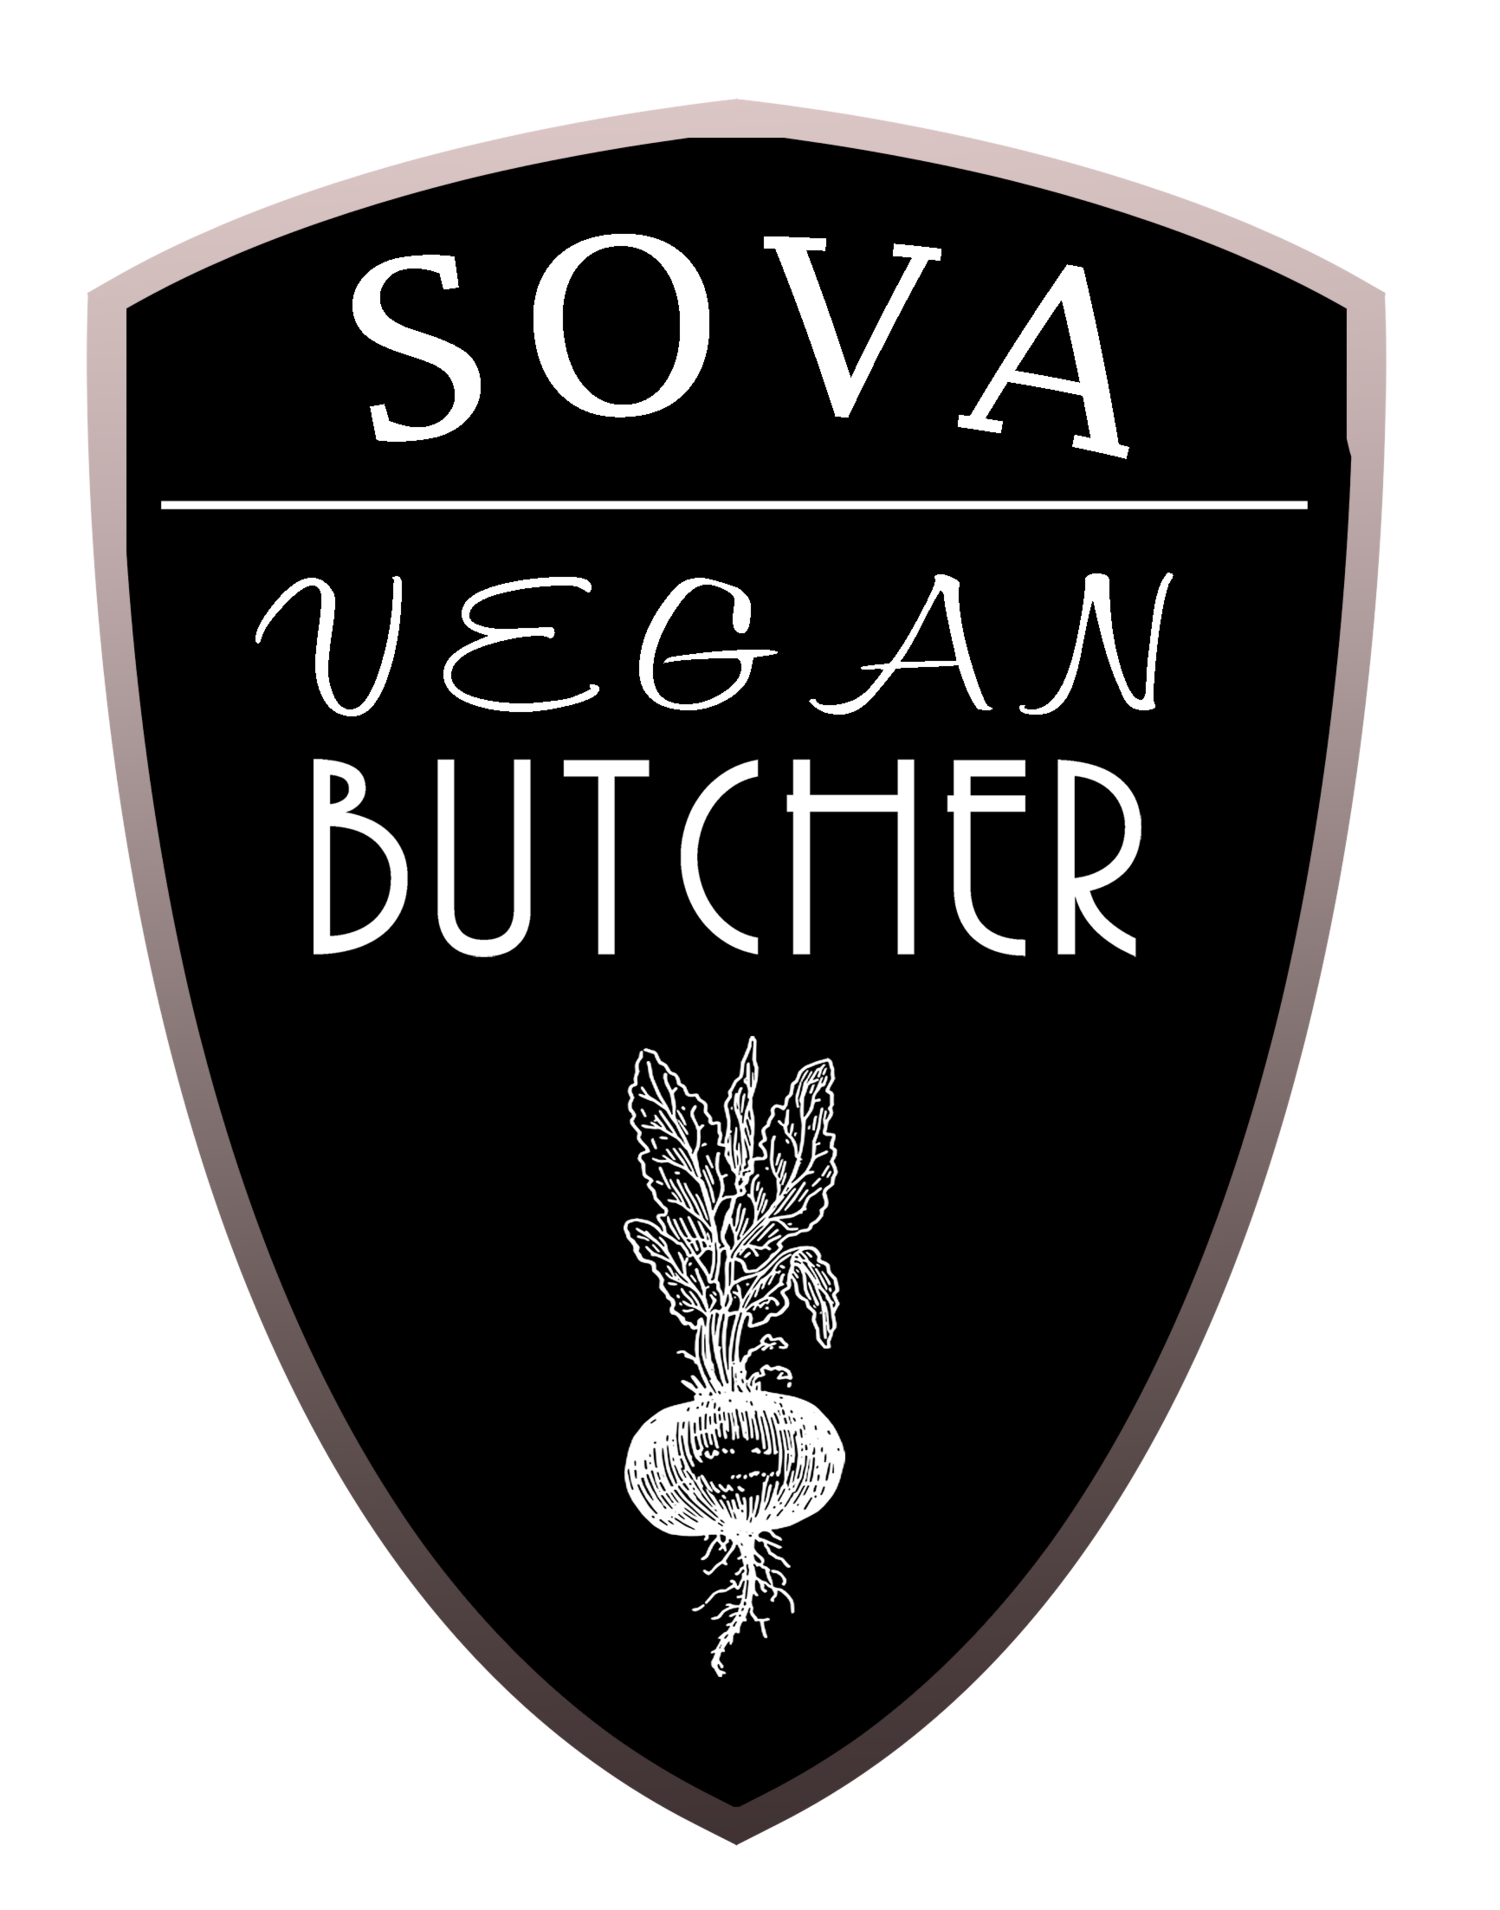 Sova Vegan Butcher